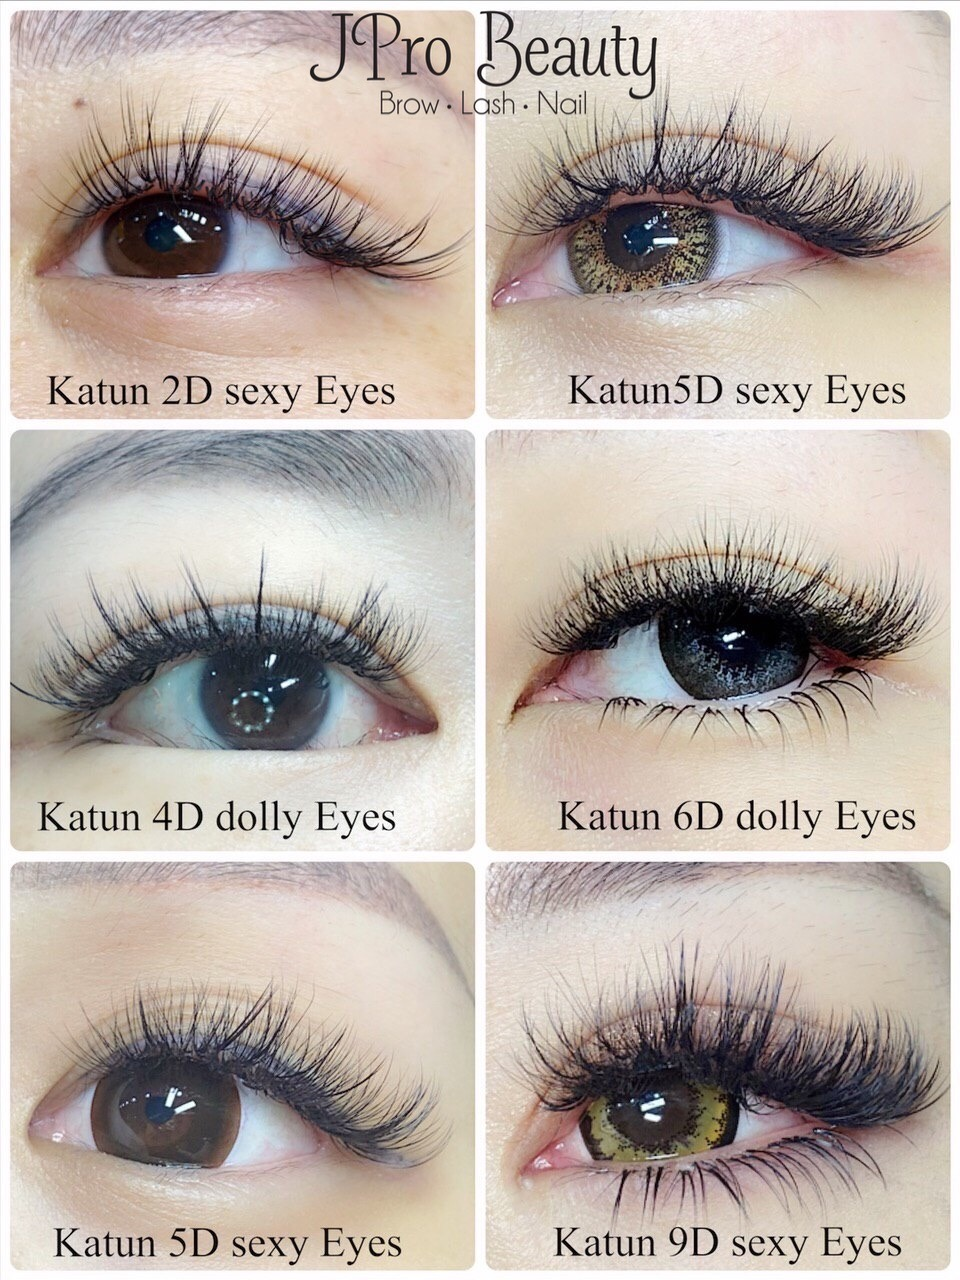 eyelash extensions what do i need to know_different katun